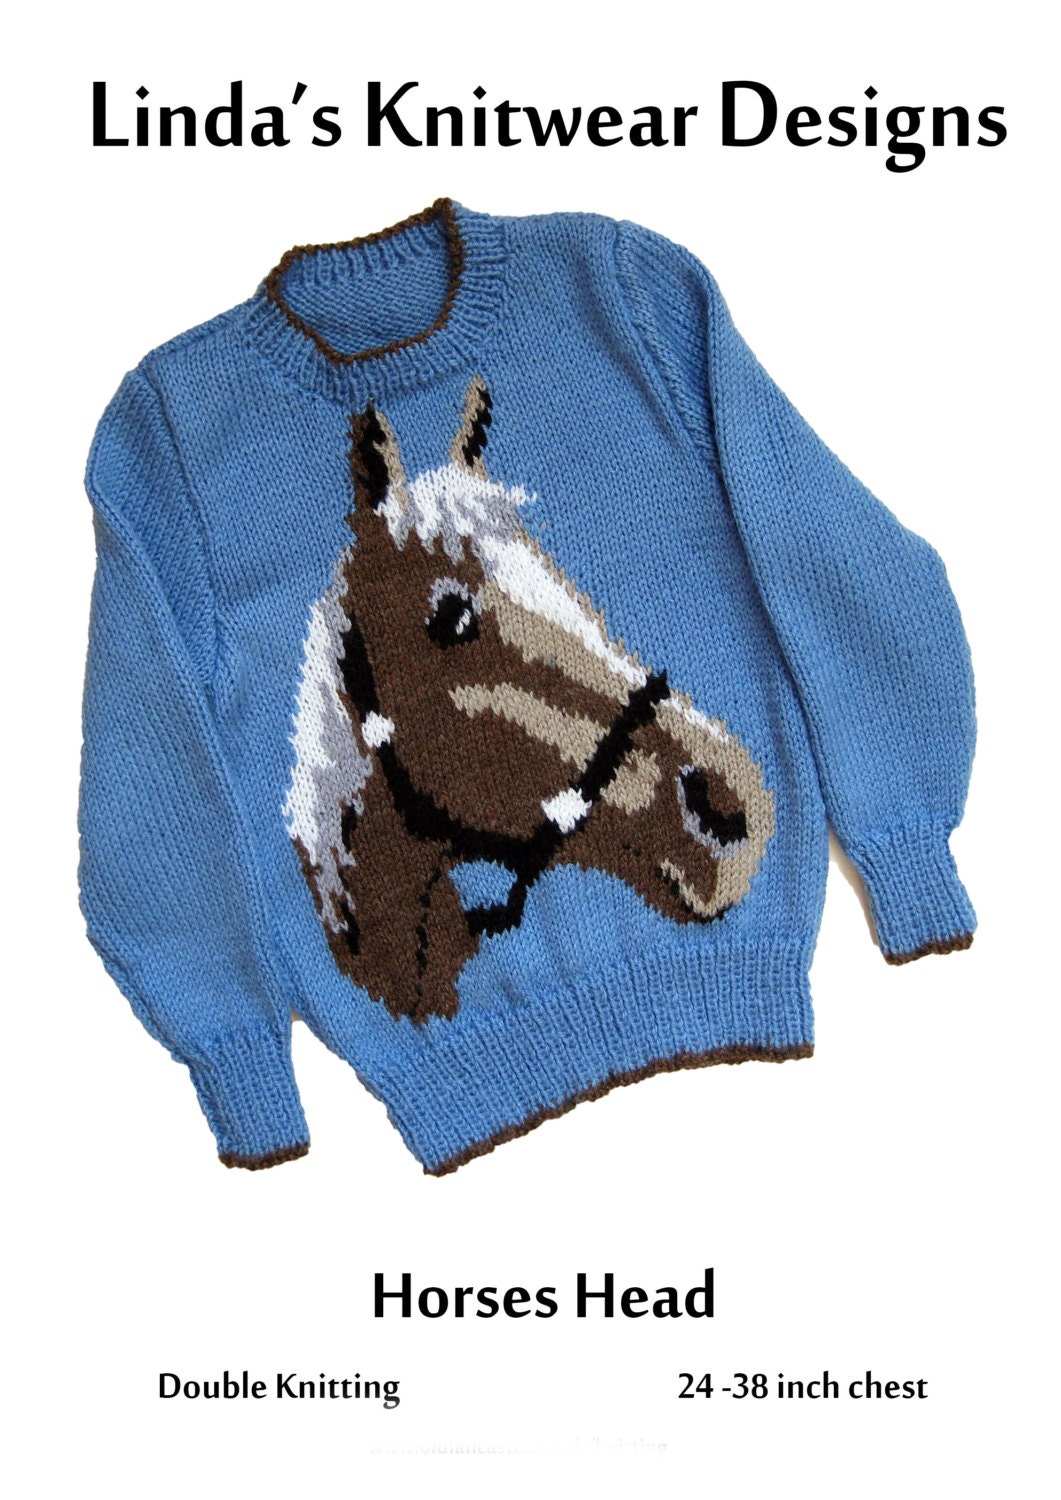 Childrens and Adult Horses Head Motif sweater knitting pattern, sizes 24 to 3...